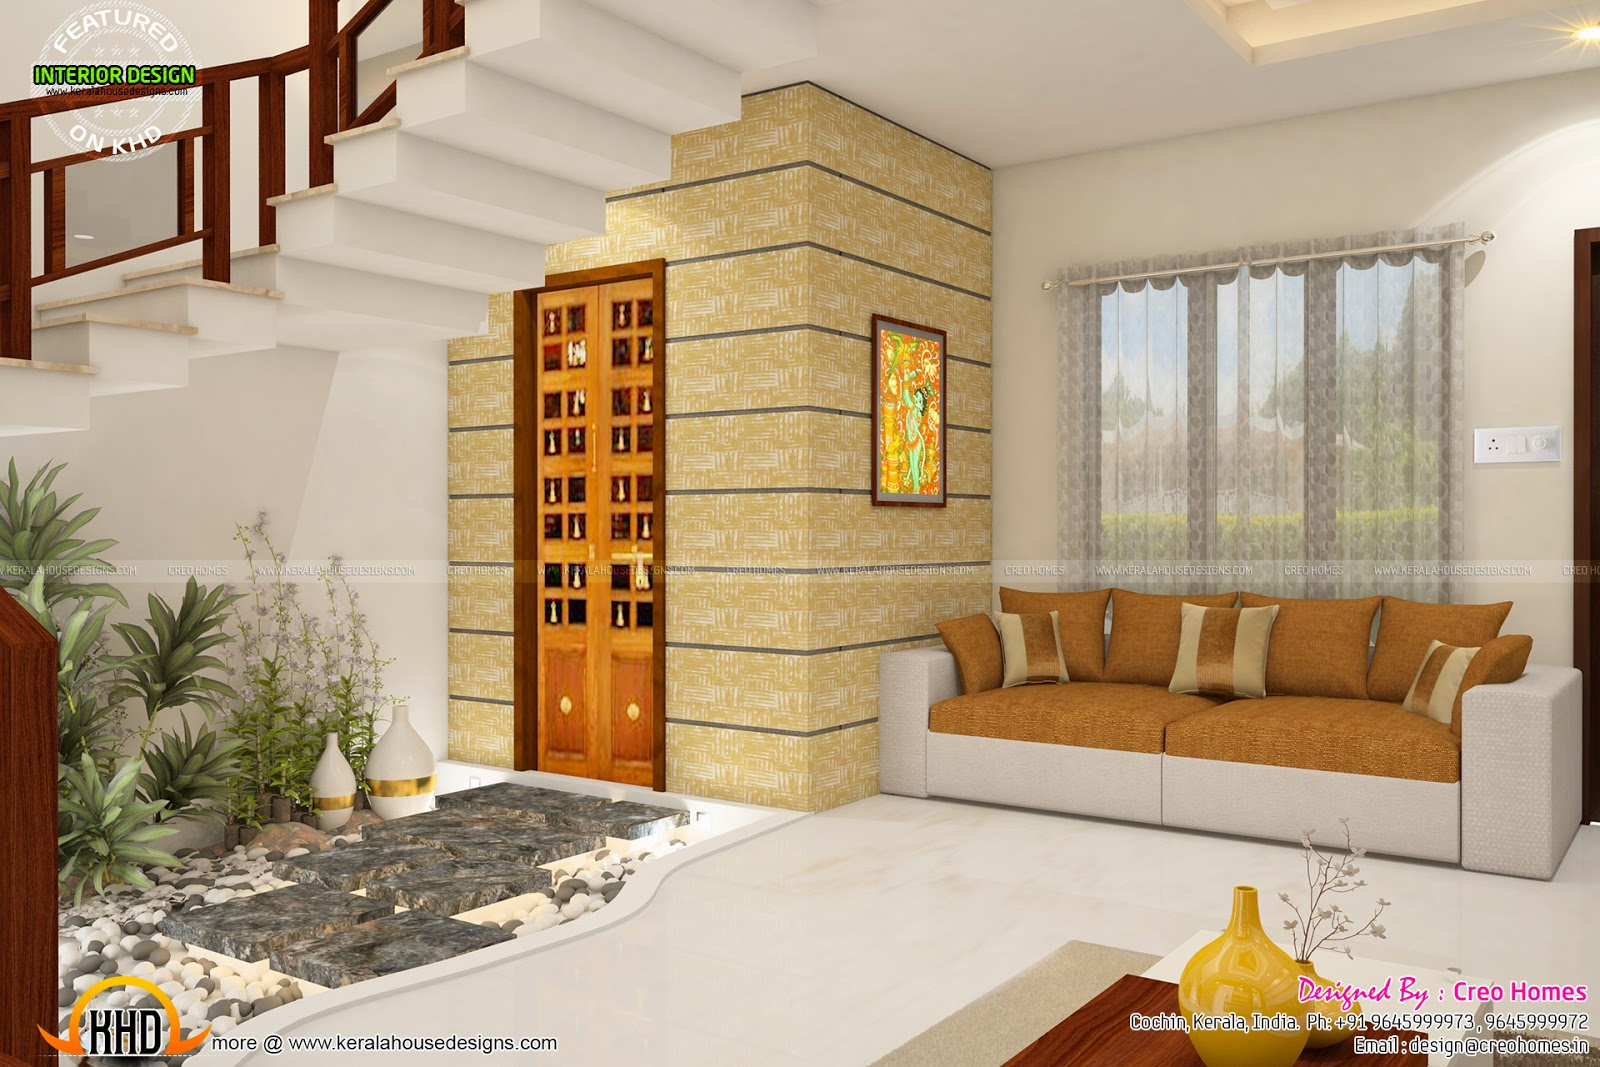 Total home interior solutions by creo homes kerala home for House decor interiors